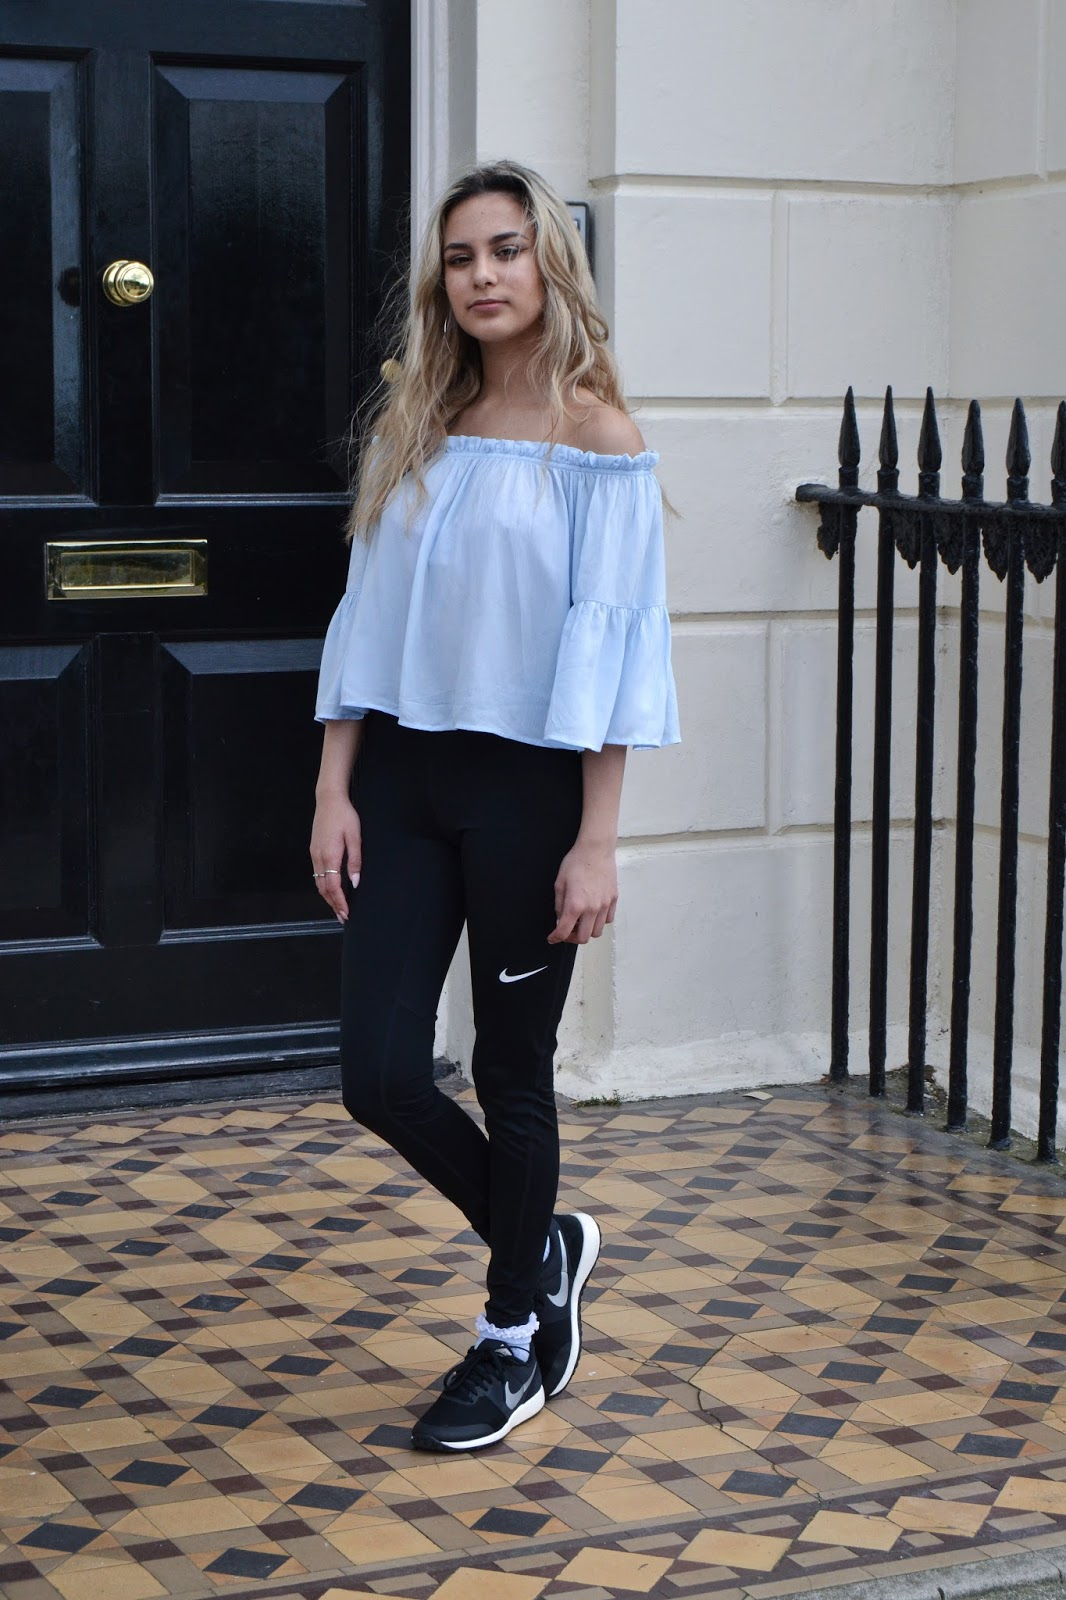 off the shoulder bardot athleisure wear sports luxe ss16 style trends fashion